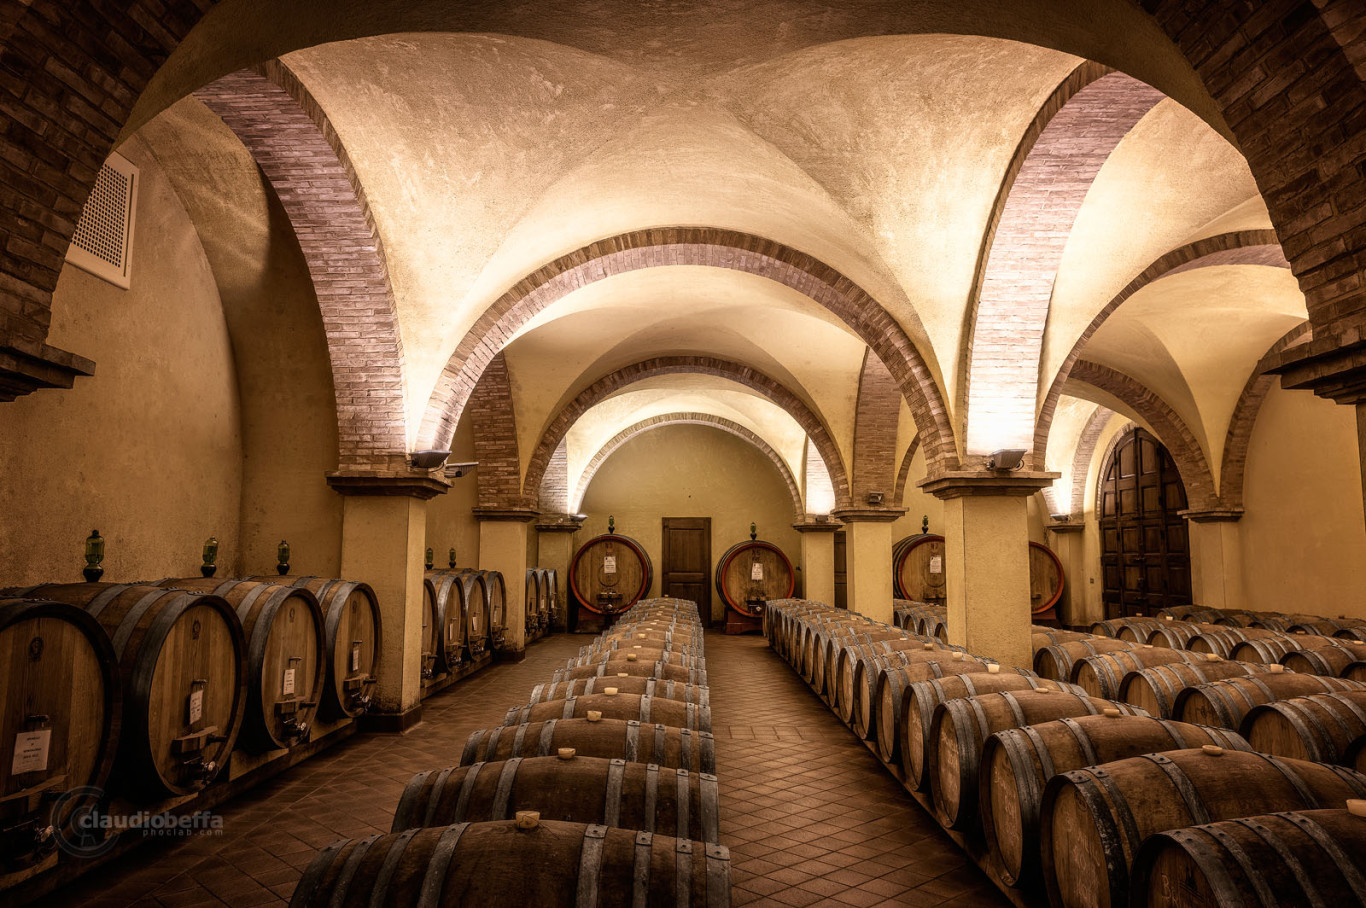 Cellar, Renaissance, Casks, Vaults, Rows, Ancient, Wine, Wine-making, Solaria, Tuscany, Toscana, Val d'Orcia, Italy, Italia